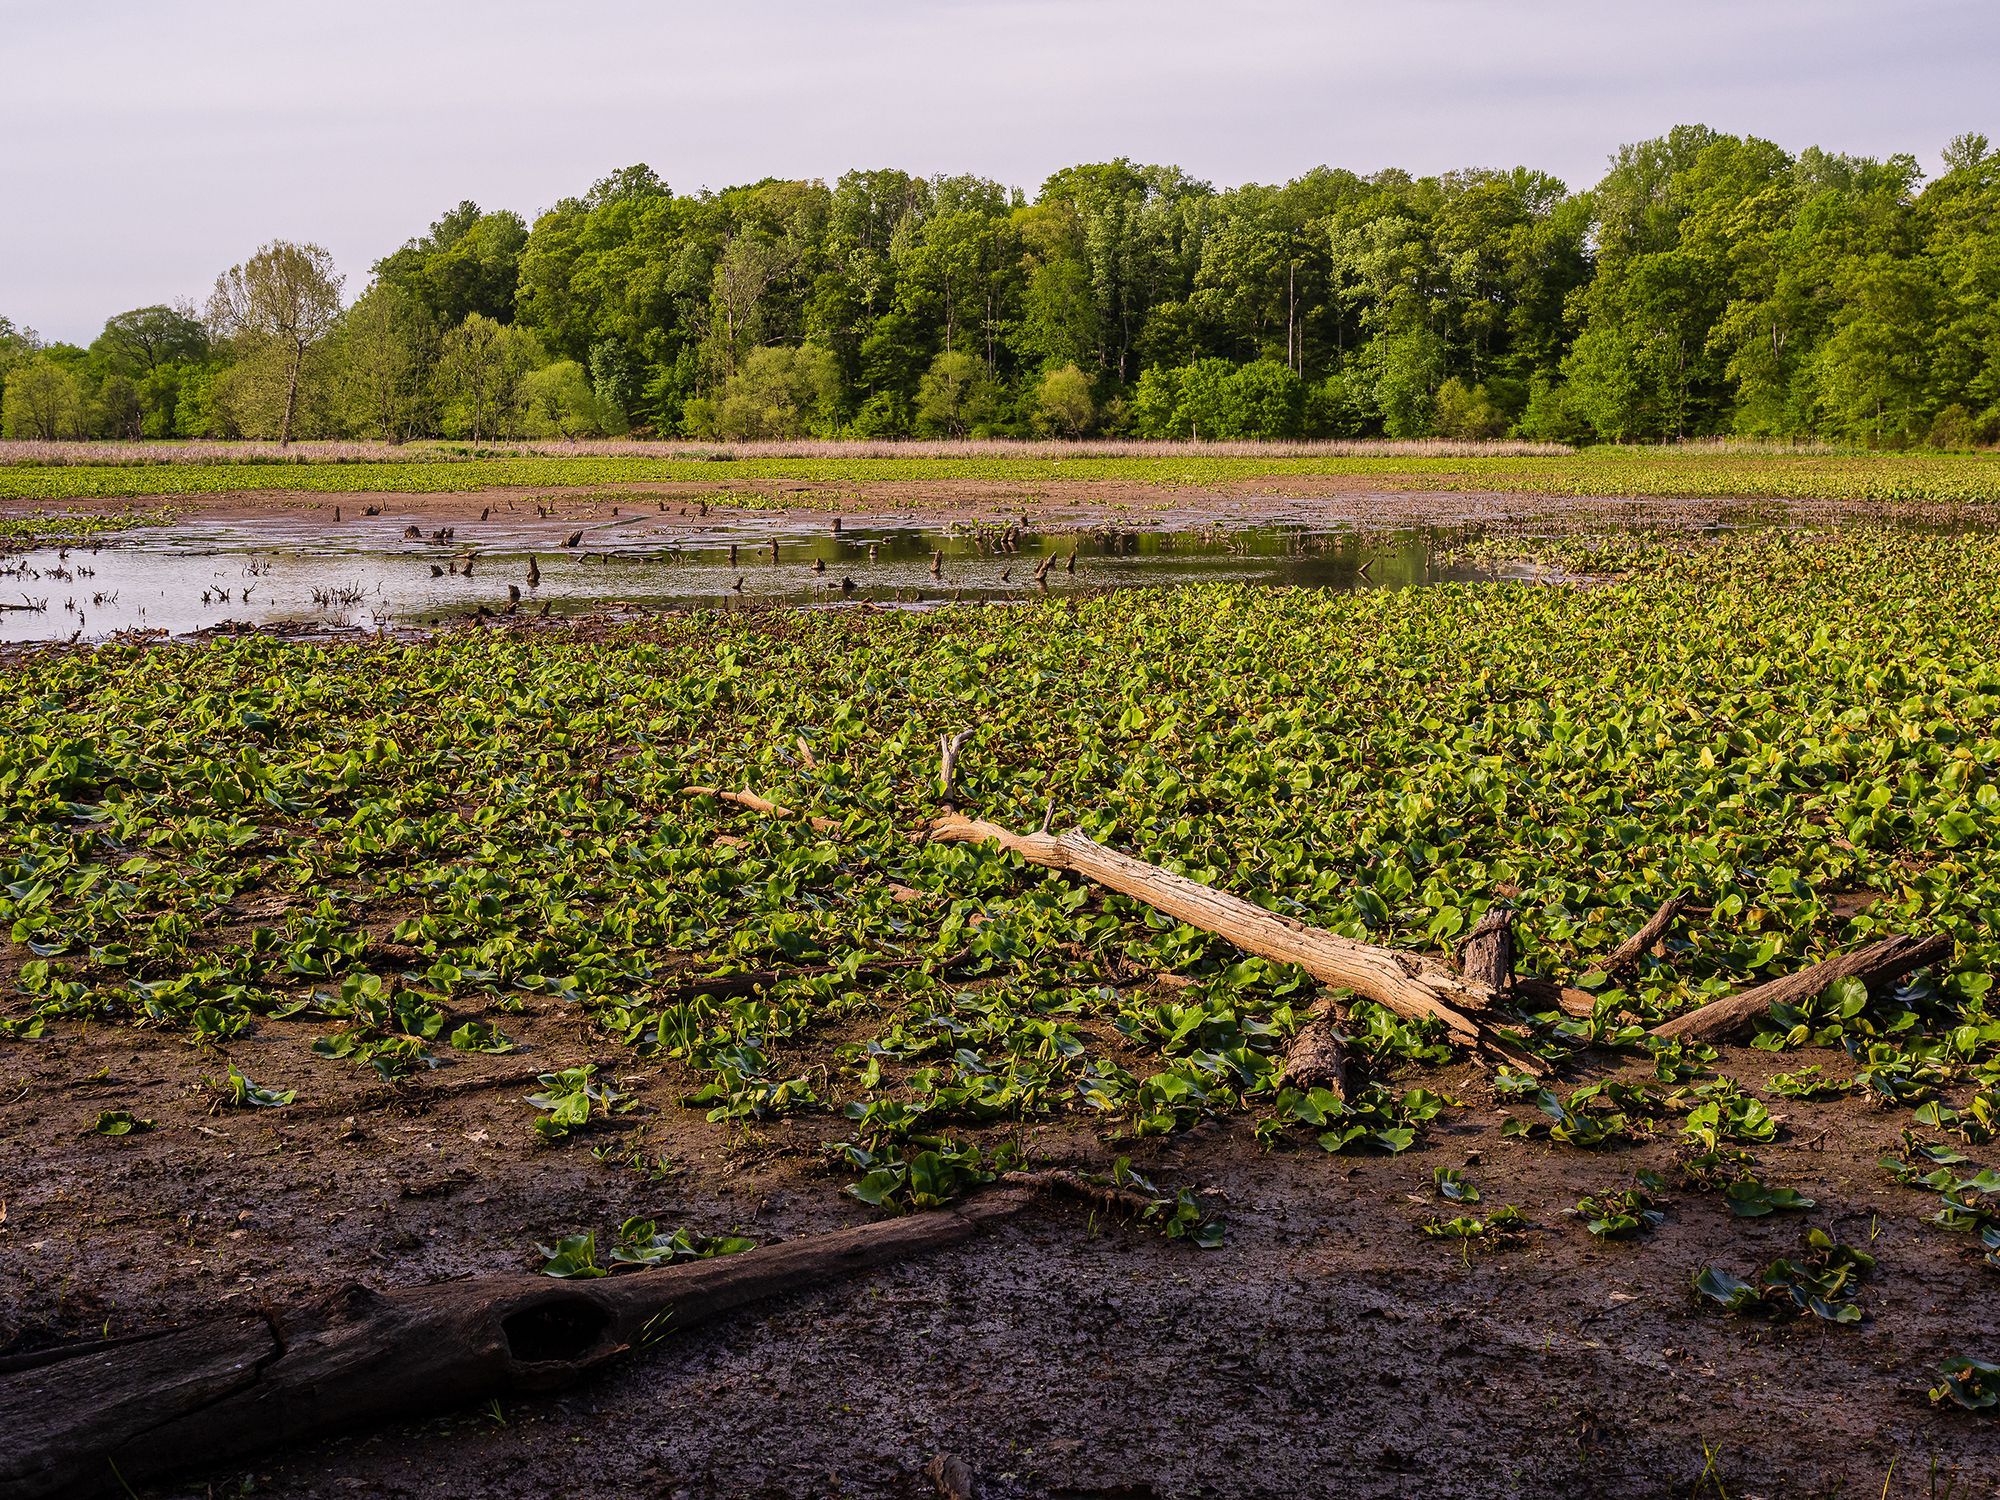 View of the receding water in what was formerly an impoundment lake created by a beaver dam. Small patches of water are visible between large swathes of aquatic vegetation left sitting in the mud.